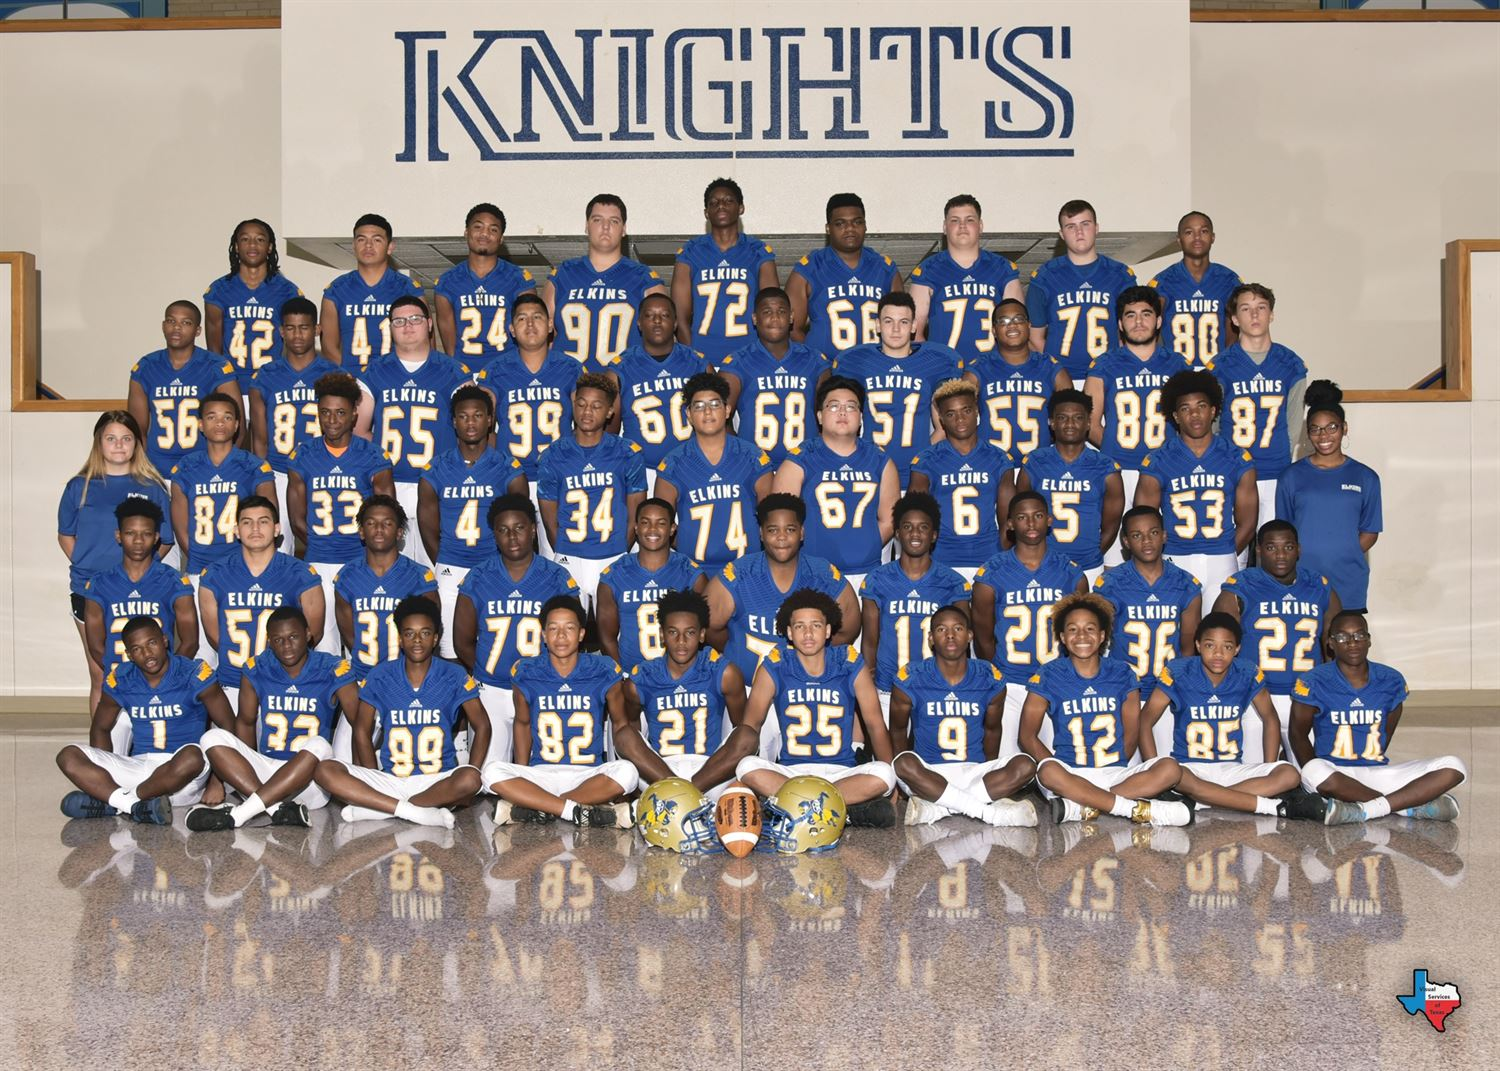 Elkins High School - Elkins JV Football